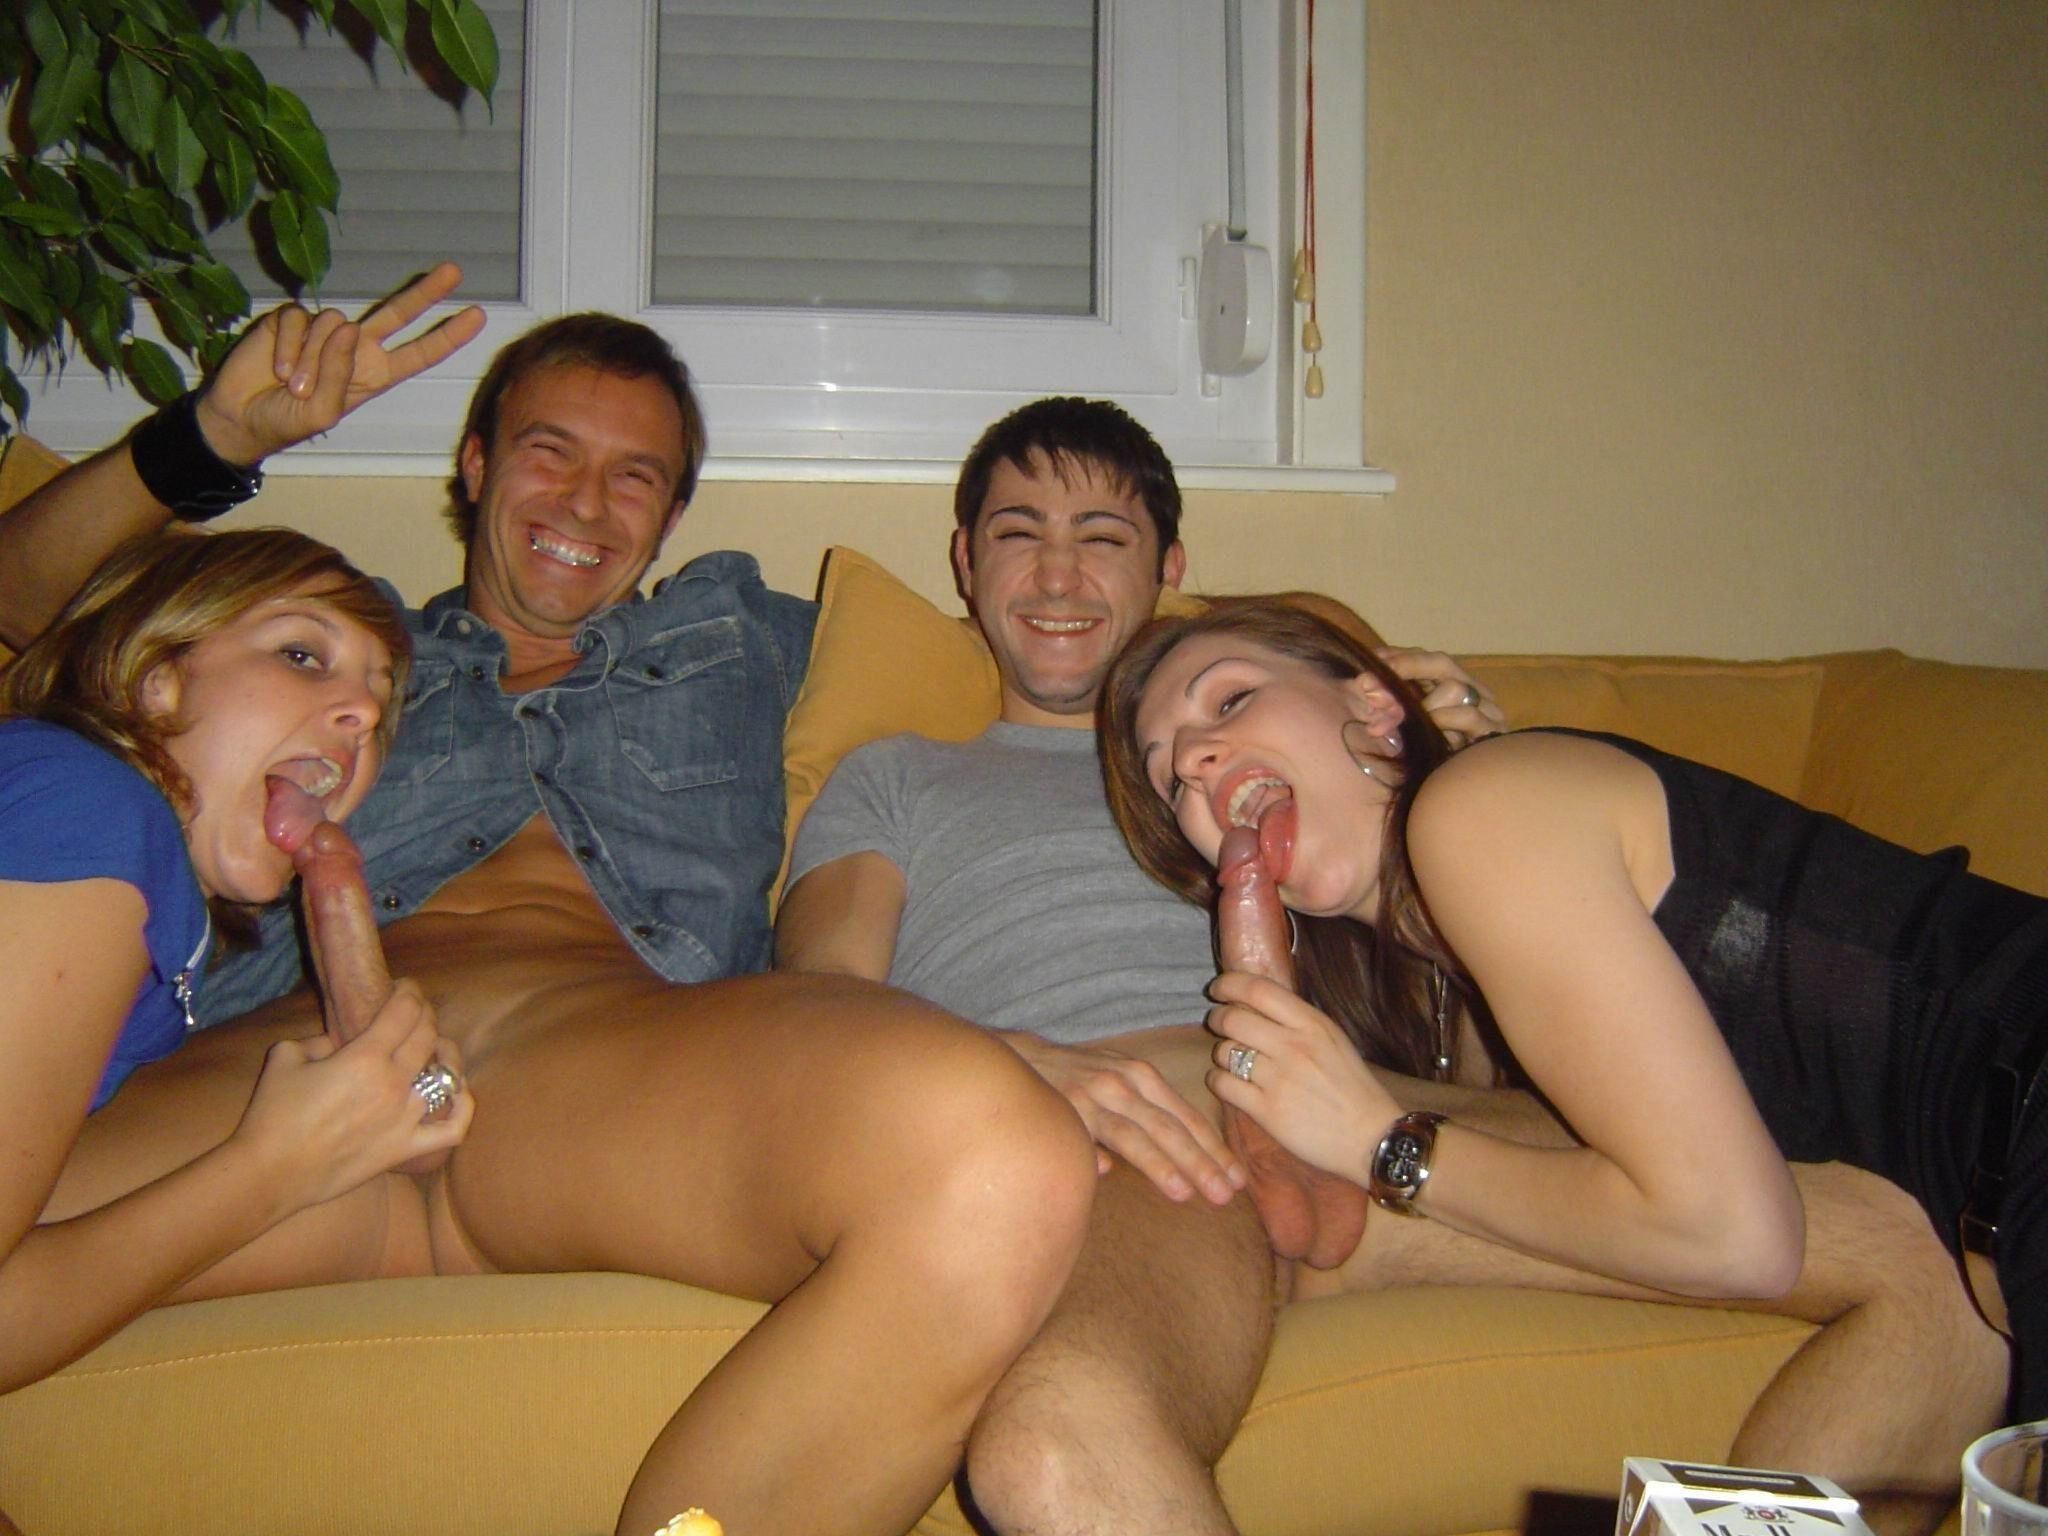 Sex real pics party Nudist Party